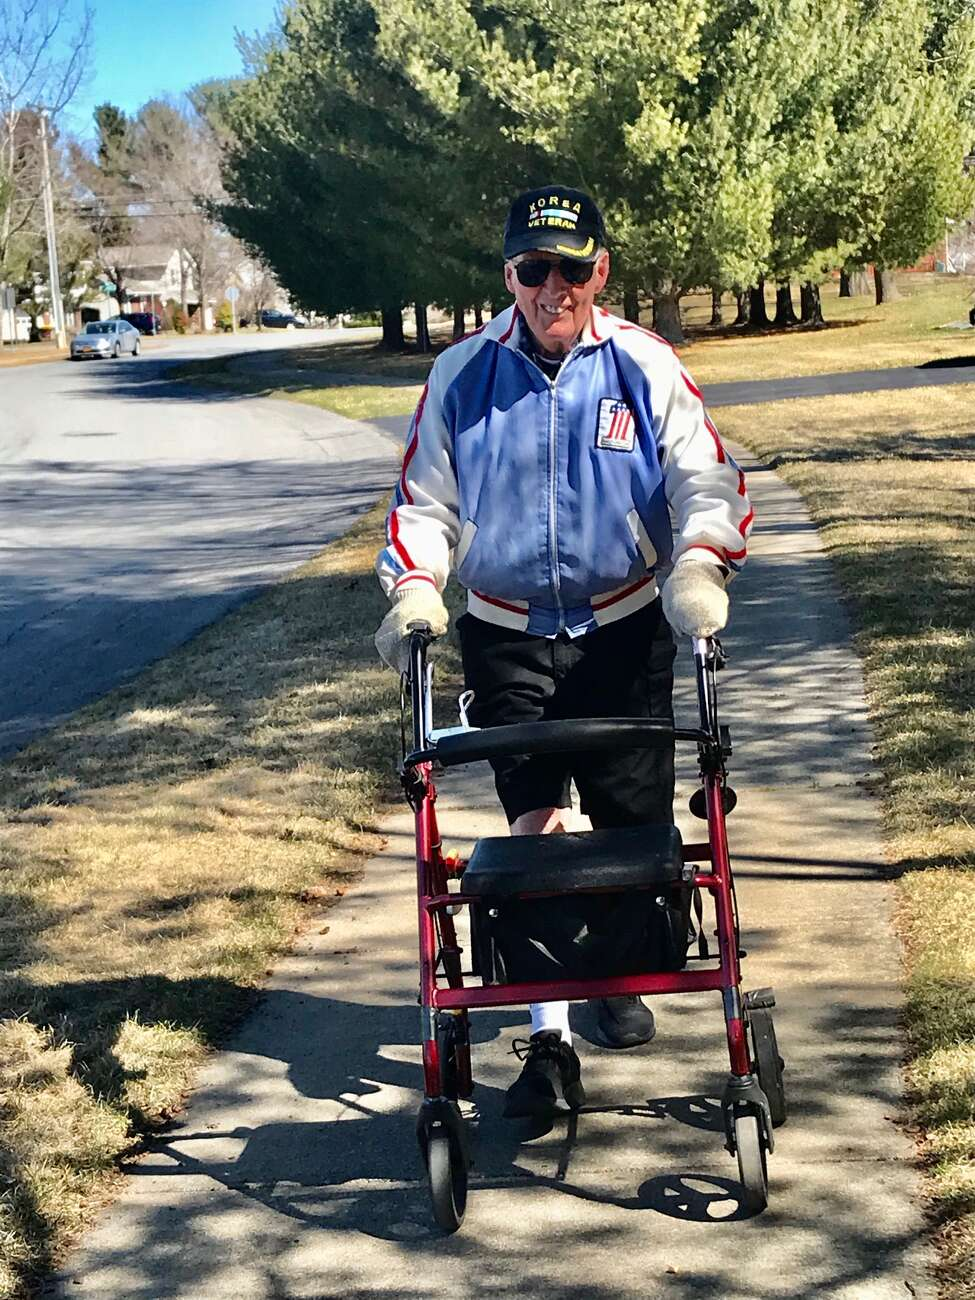 Fred Malone plays upbeat music on his radio to keep his pace up on his daily four-mile walk.